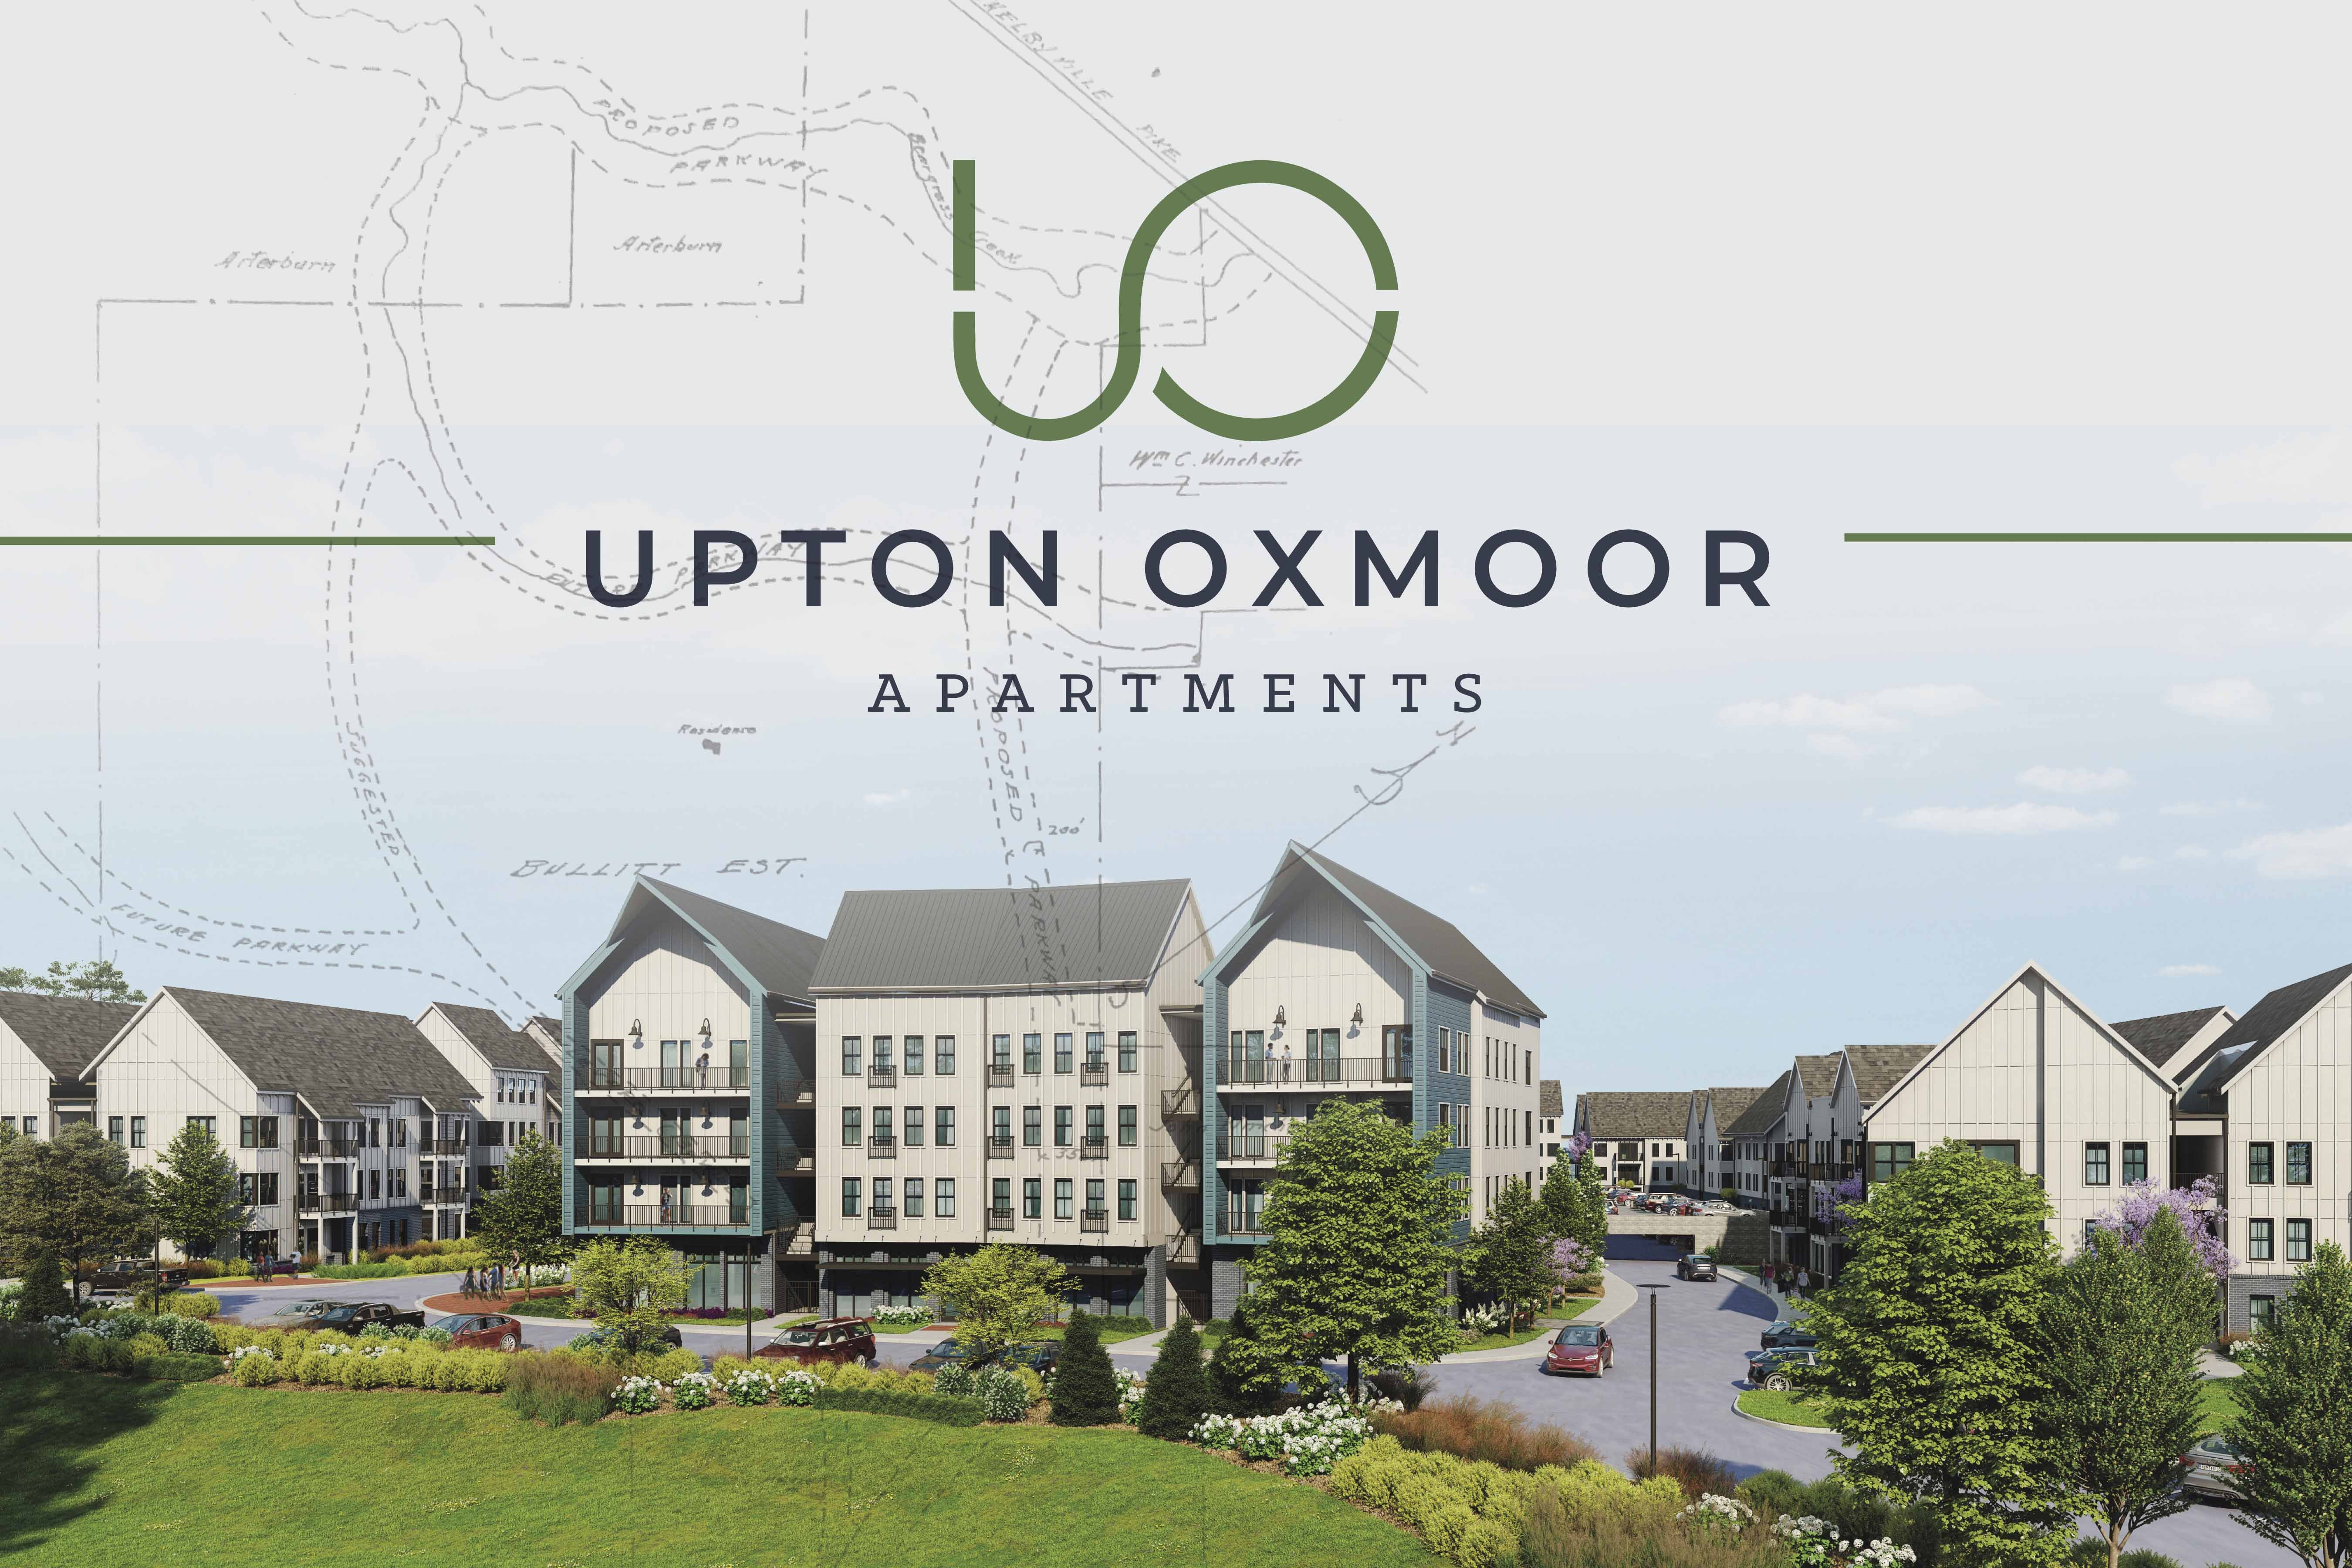 Upton Oxmoor Rendering of apartments and neighborhood